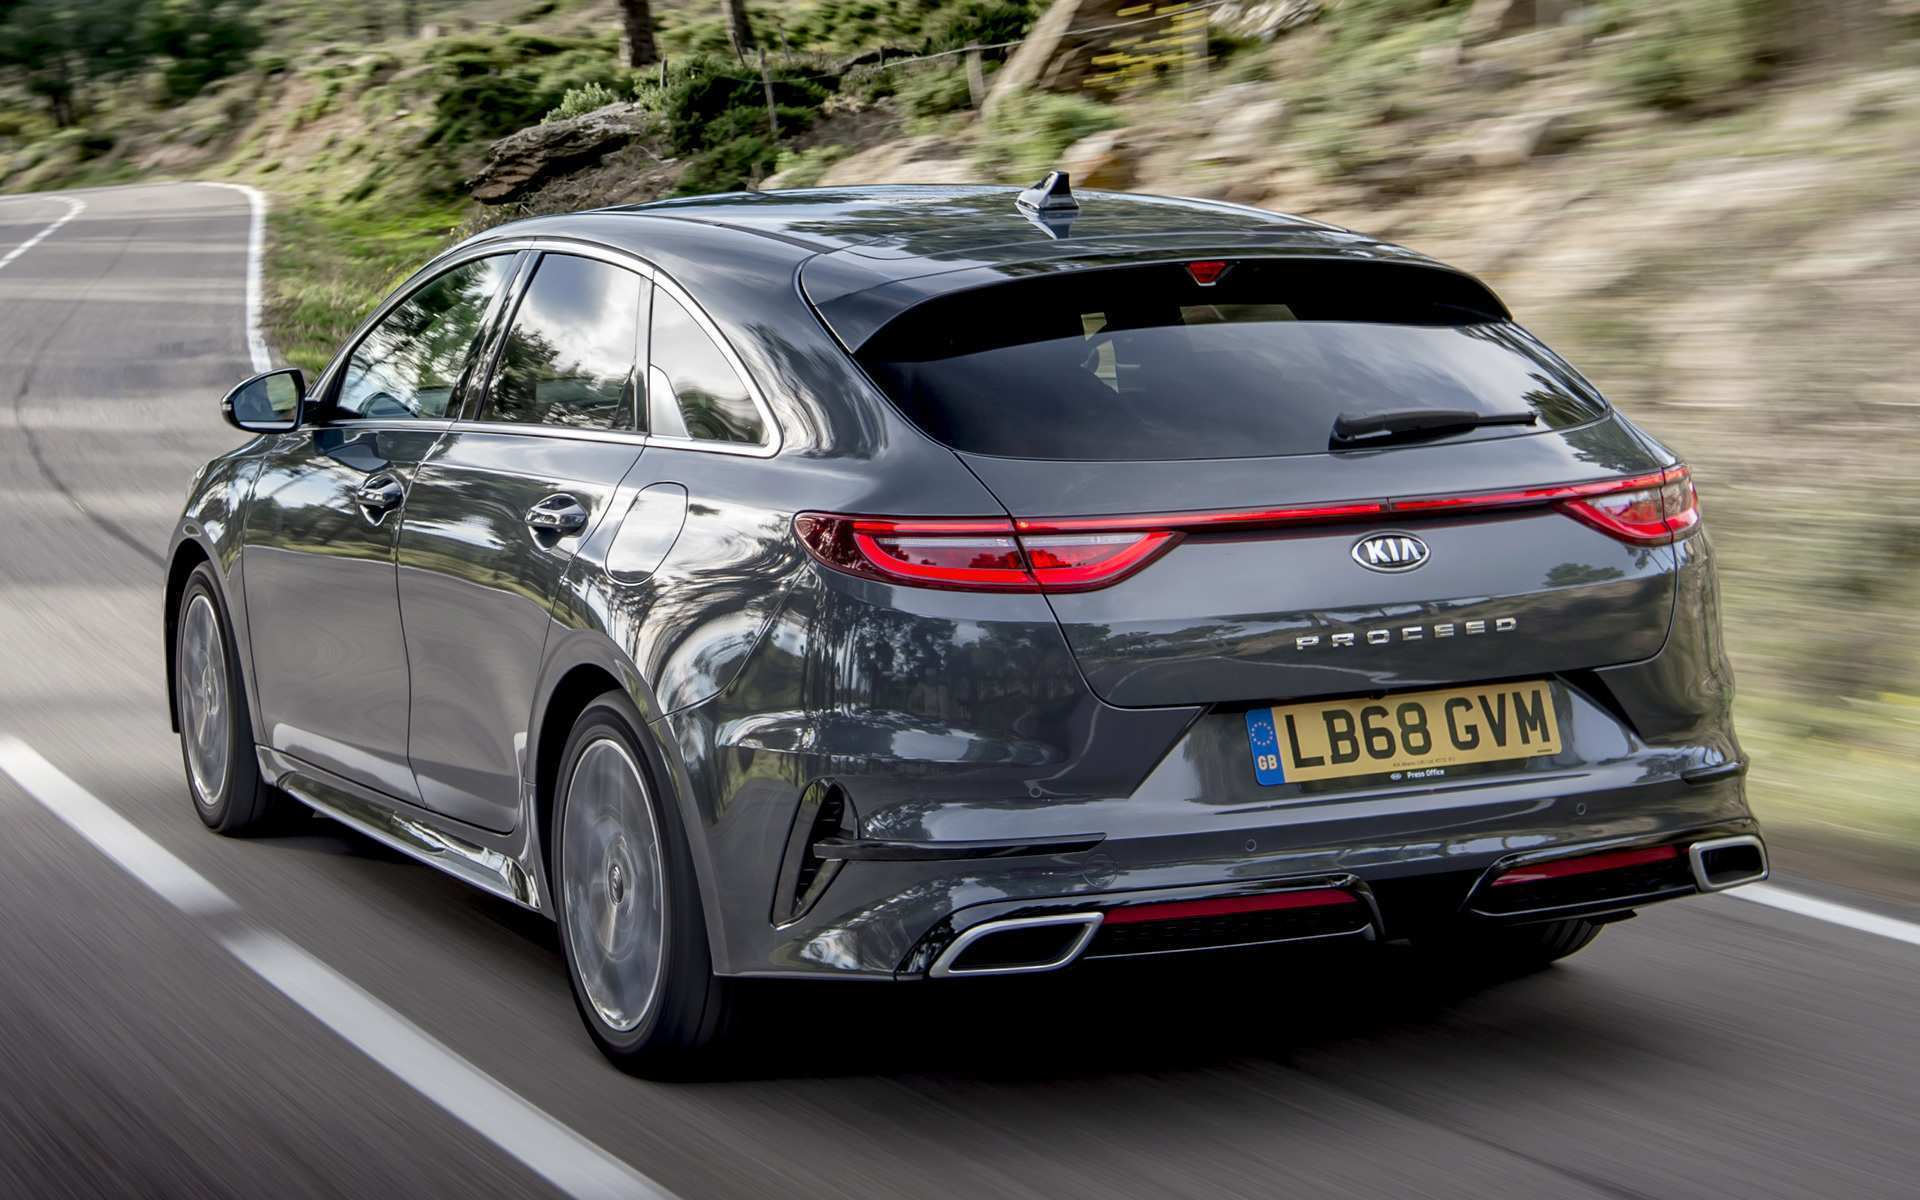 81 New Kia Ceed Gt 2019 Review And Release Date